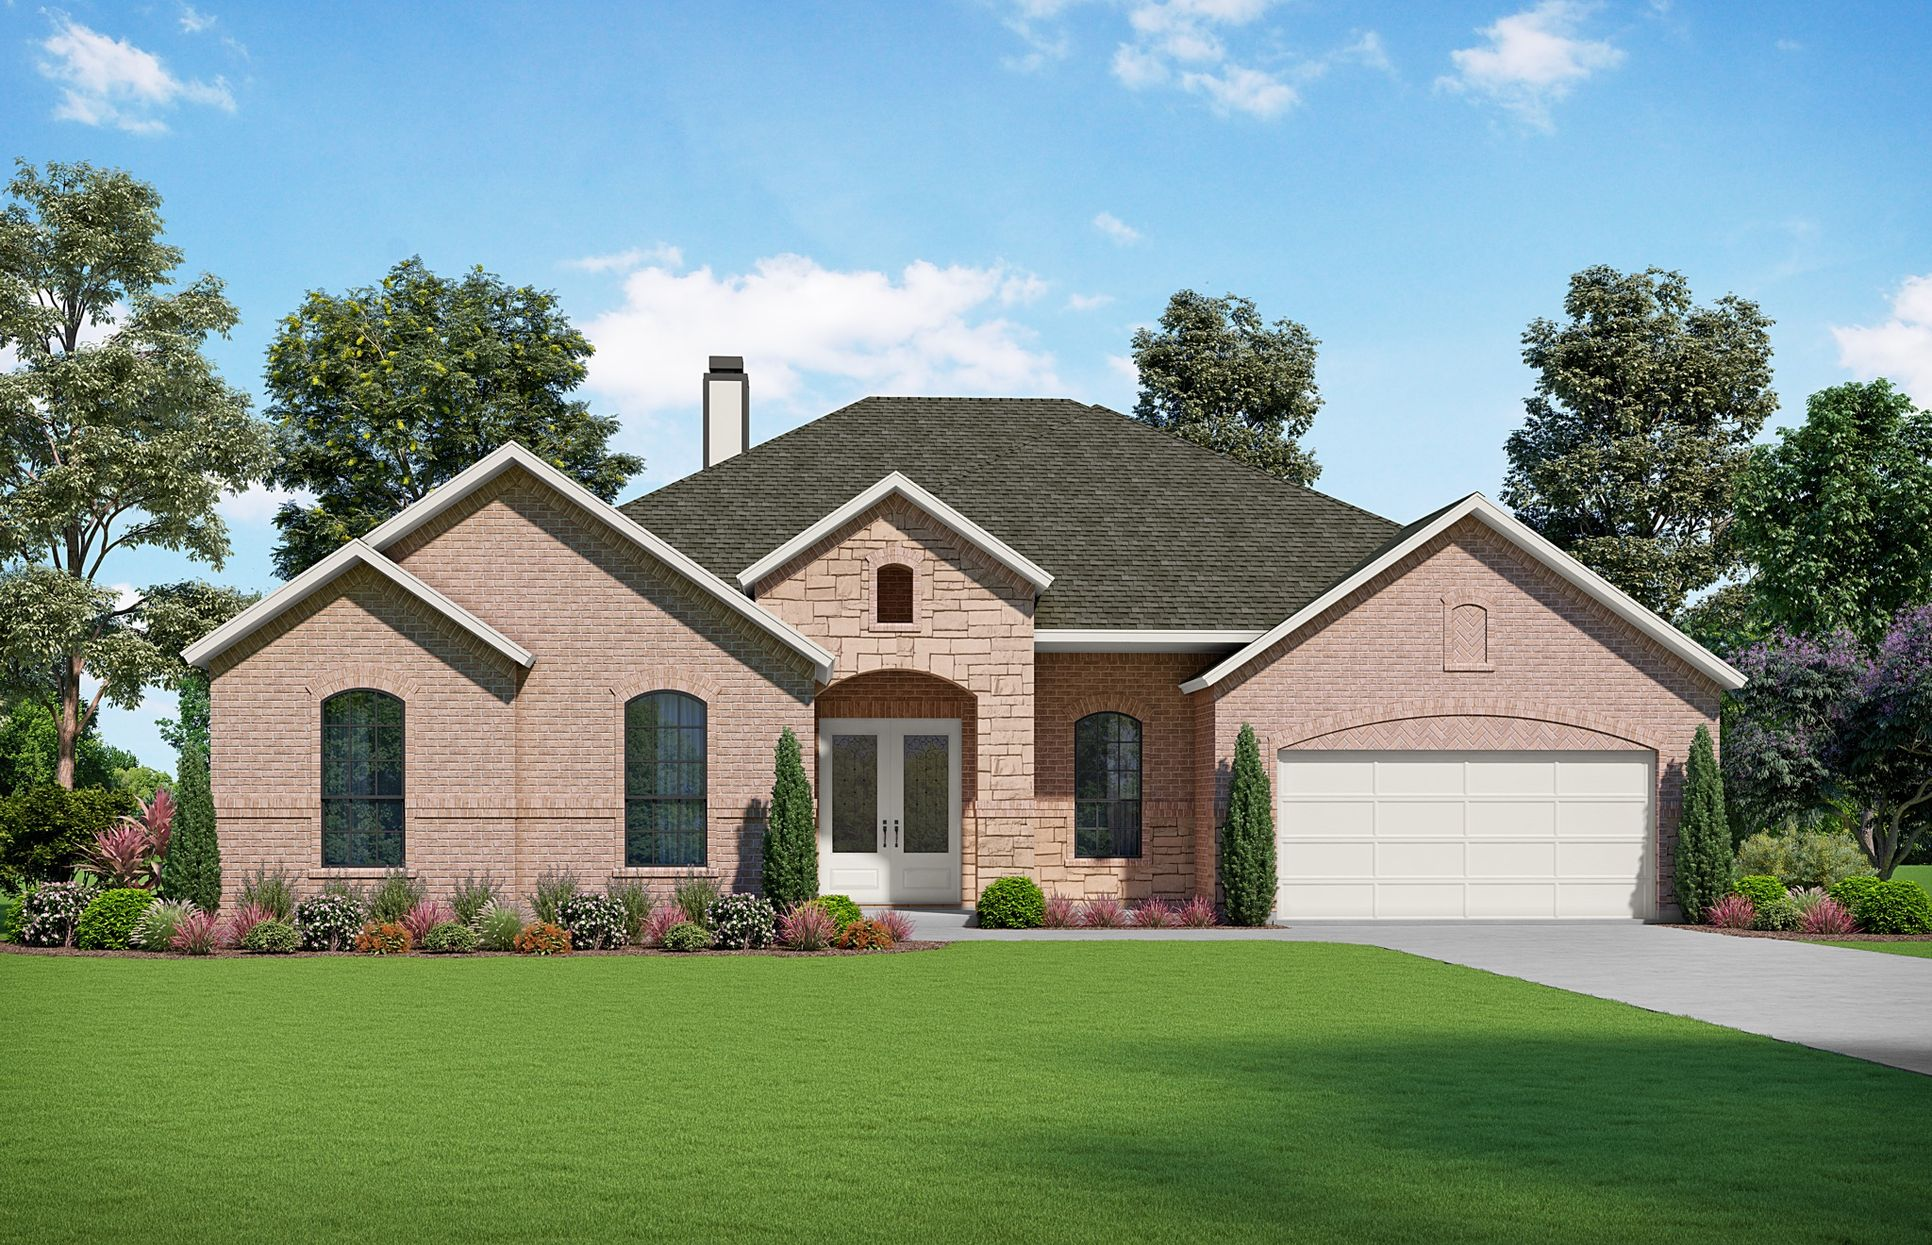 The Andross Elevation A. Images are artist renderings and will differ from the actual home built.:The Andross Elevation A